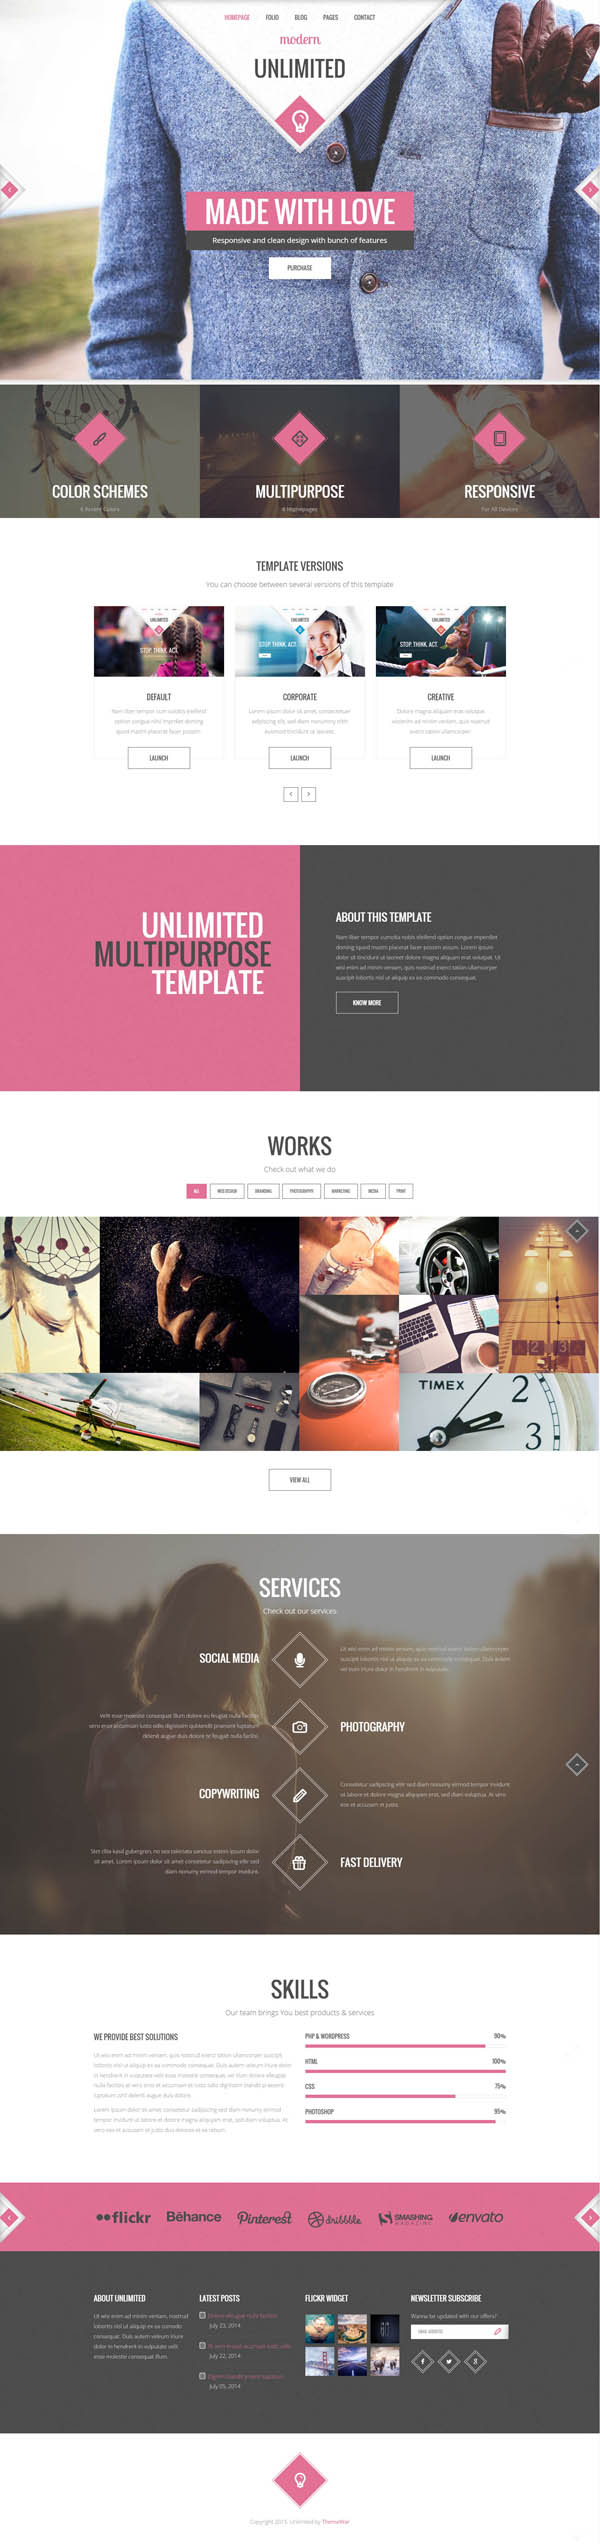 Unlimited - Responsive Multipurpose HTML5 Template